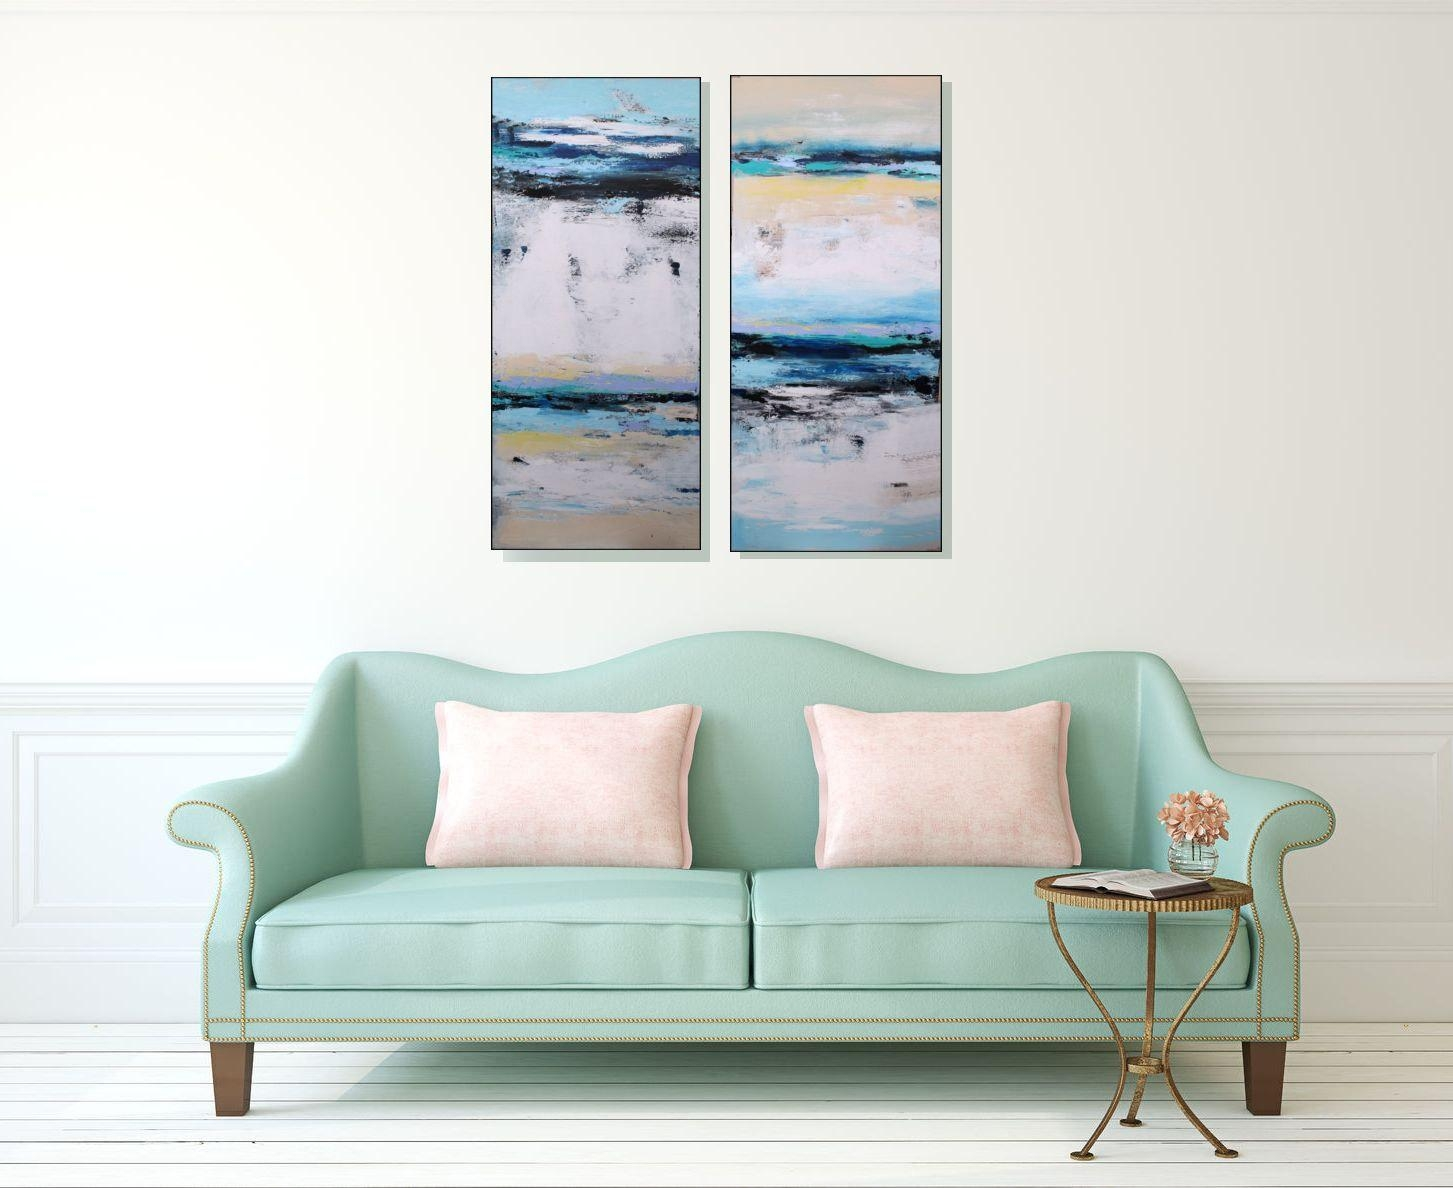 Large Abstract White And Blue Canvas Art Original Wall Art Inside Coastal Wall Art Canvas (Image 12 of 20)